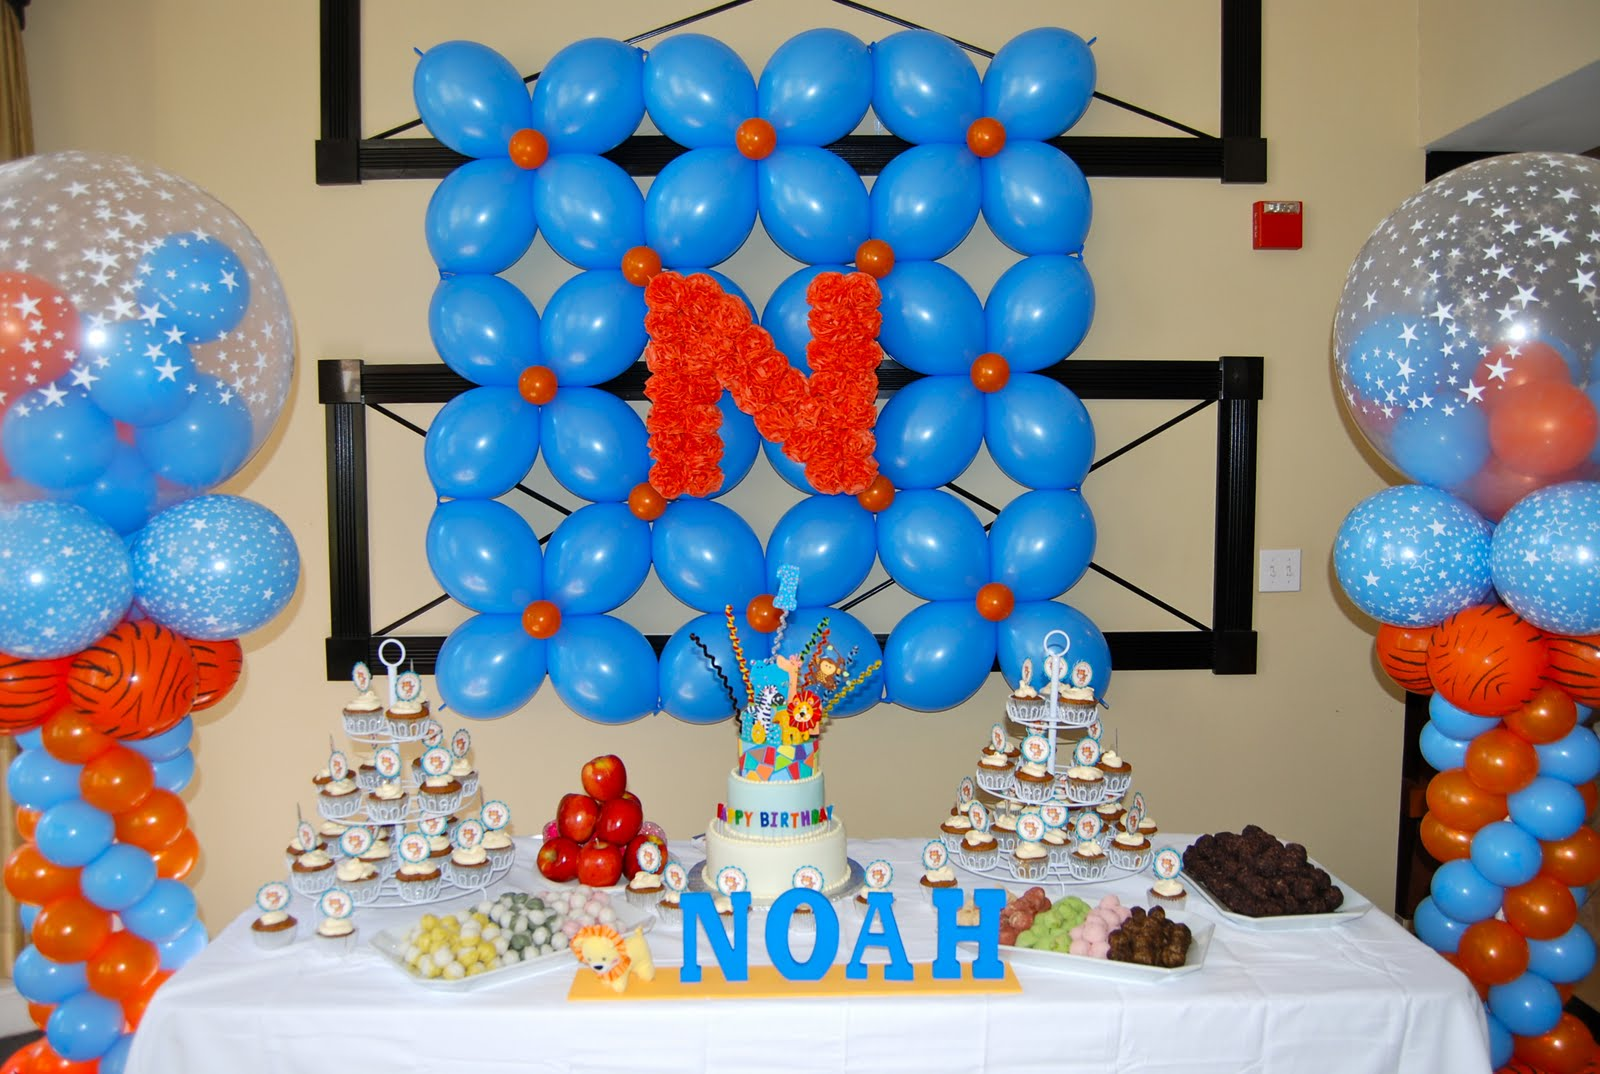 Balloon Decoration For First Birthday Of Noah 39 S Safari Themed 1st Birthday Party Balloon Decor